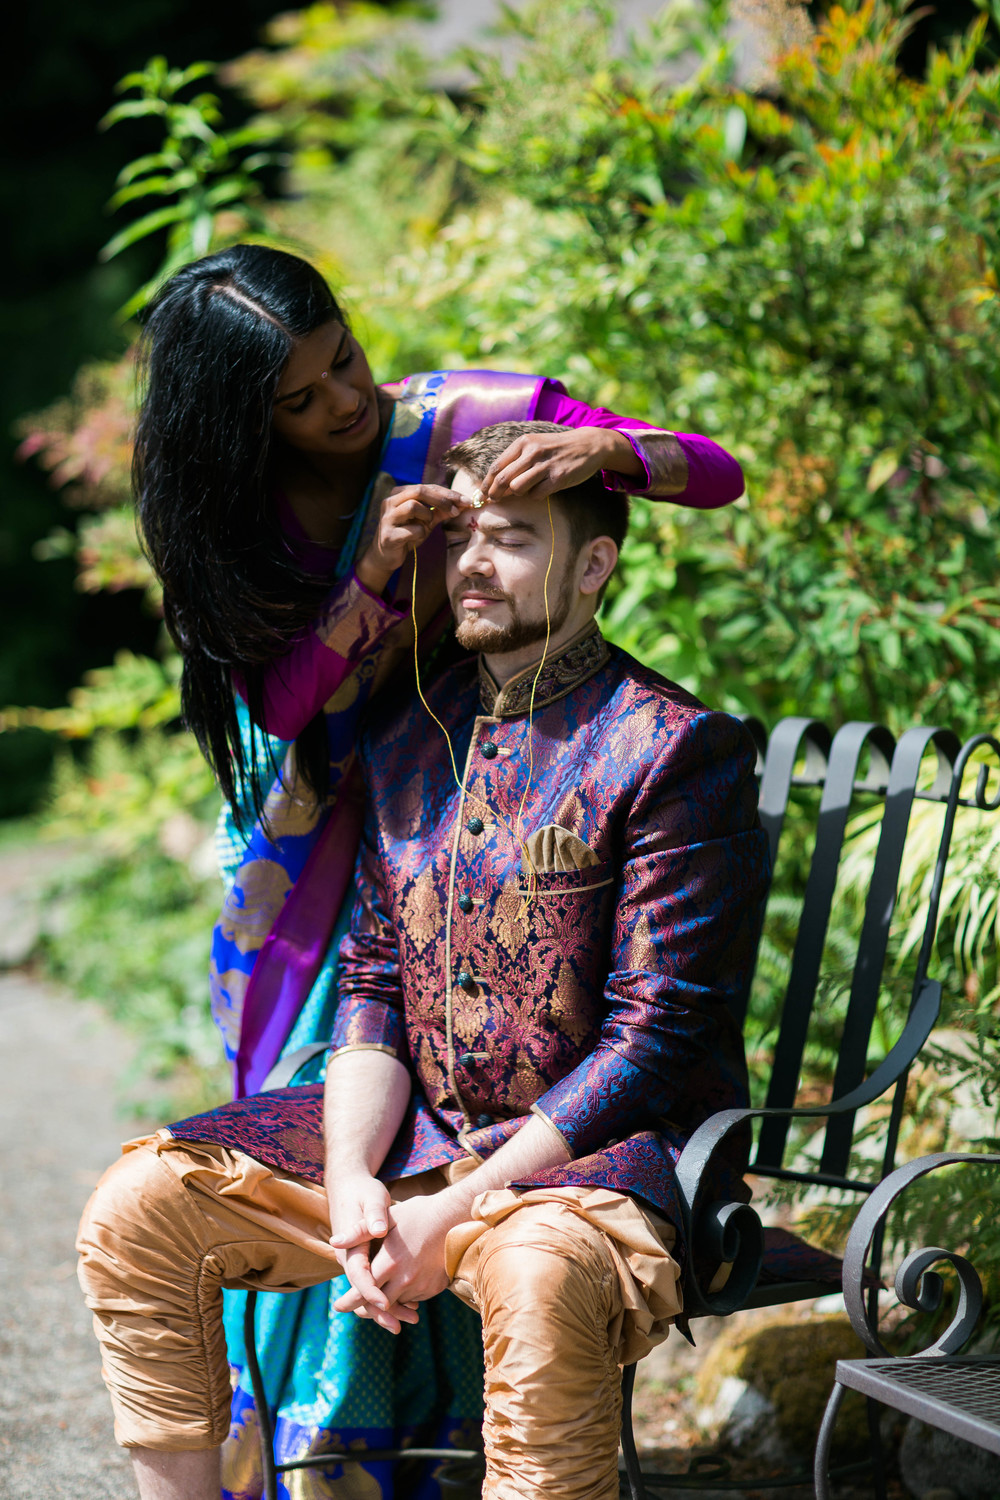 Hima+Dan_Wedding_Seattle+Couple_Kingston_6112016_95.jpg